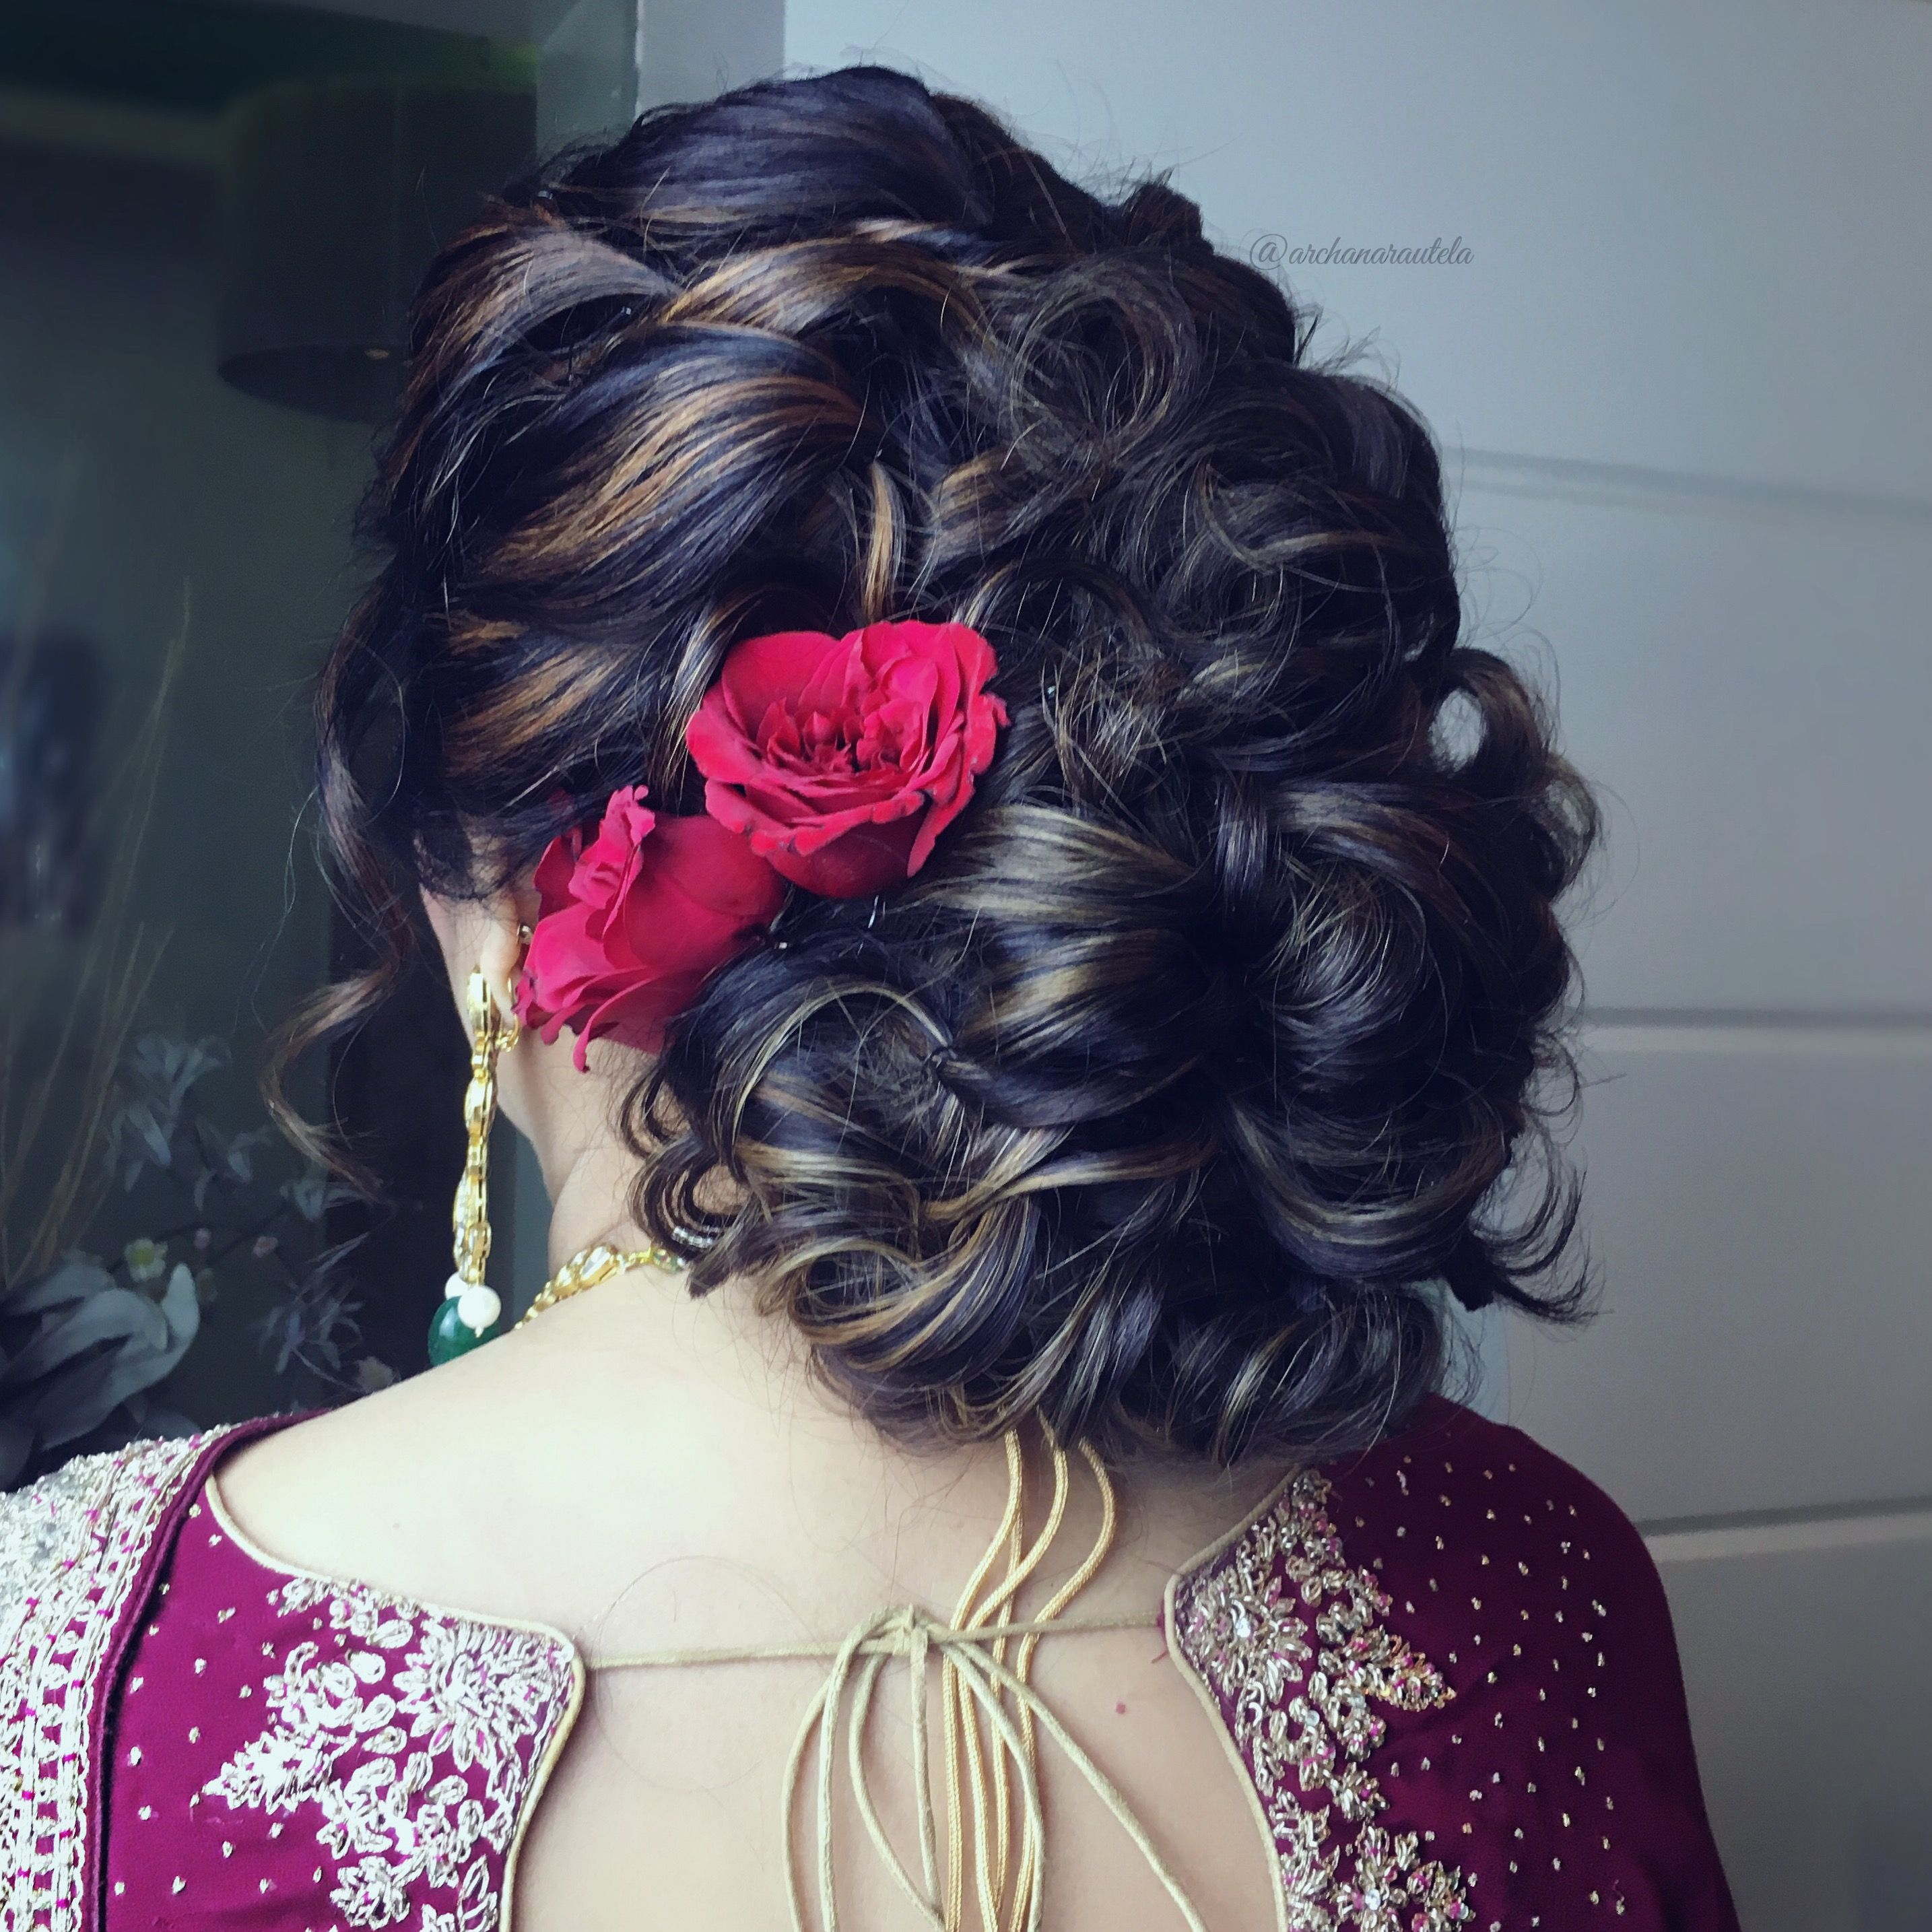 Twist And Turns Lower Bun Voluminous All U Need Is Roses Olahhhh U Sorted Hair Styles Bridal Hair Buns Bun Hairstyles